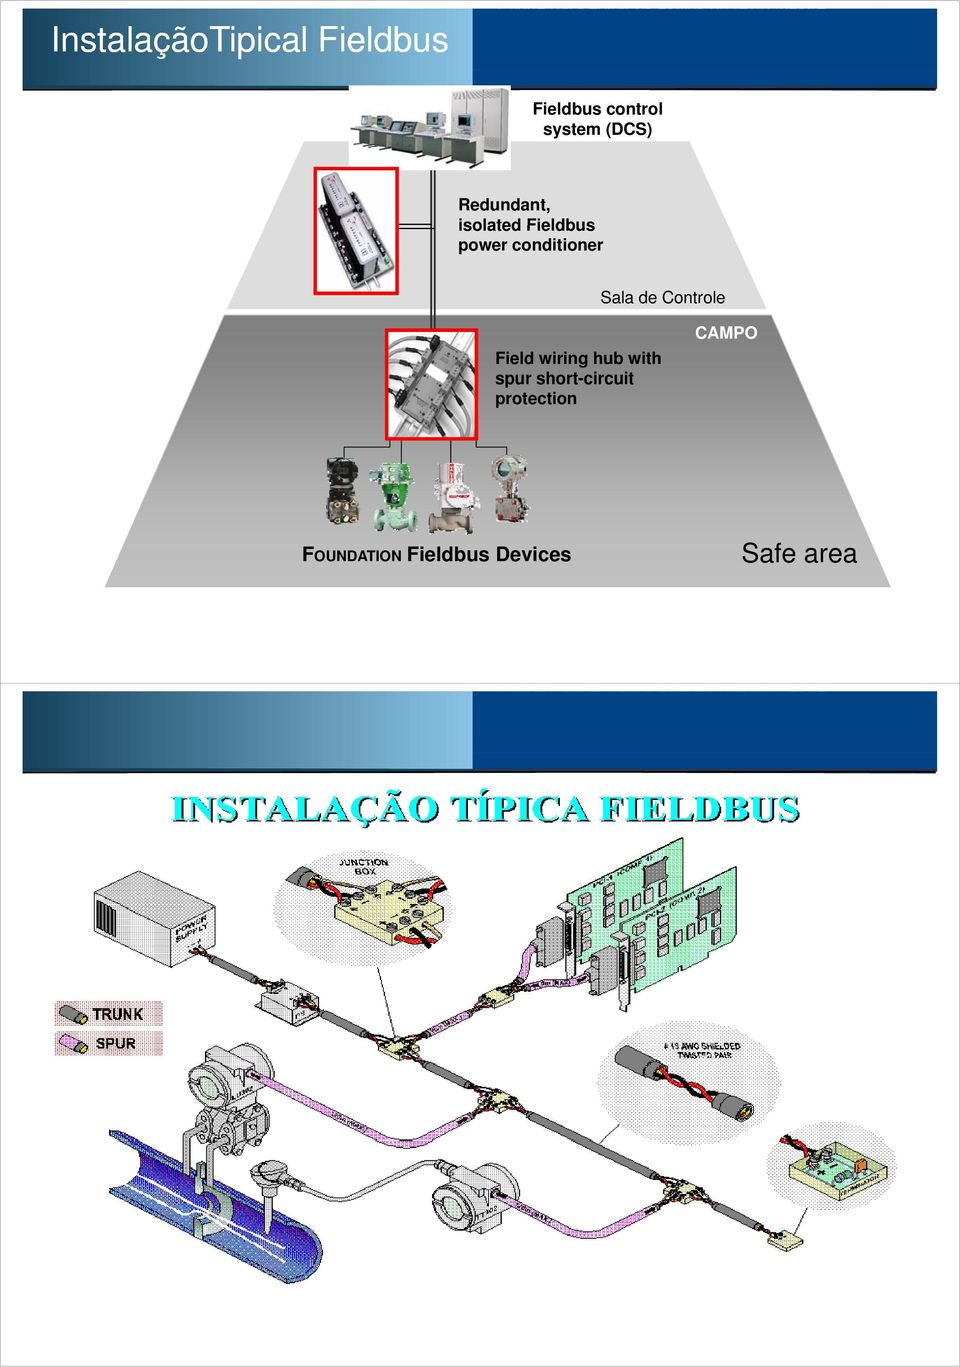 Sala de Controle Field wiring hub with spur